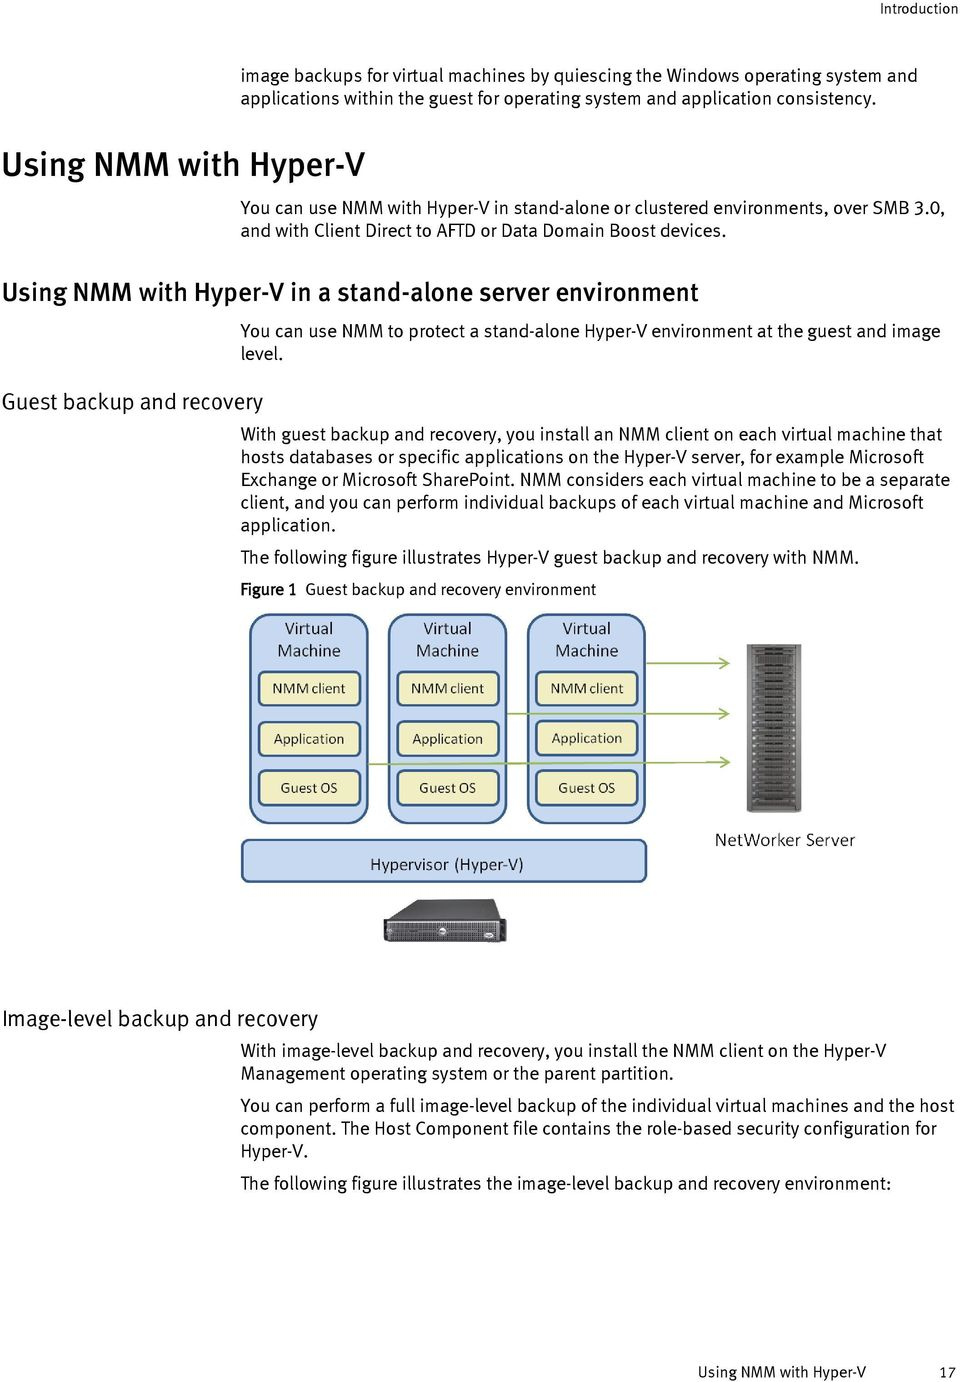 Using NMM with Hyper-V in a stand-alone server environment Guest backup and recovery You can use NMM to protect a stand-alone Hyper-V environment at the guest and image level.